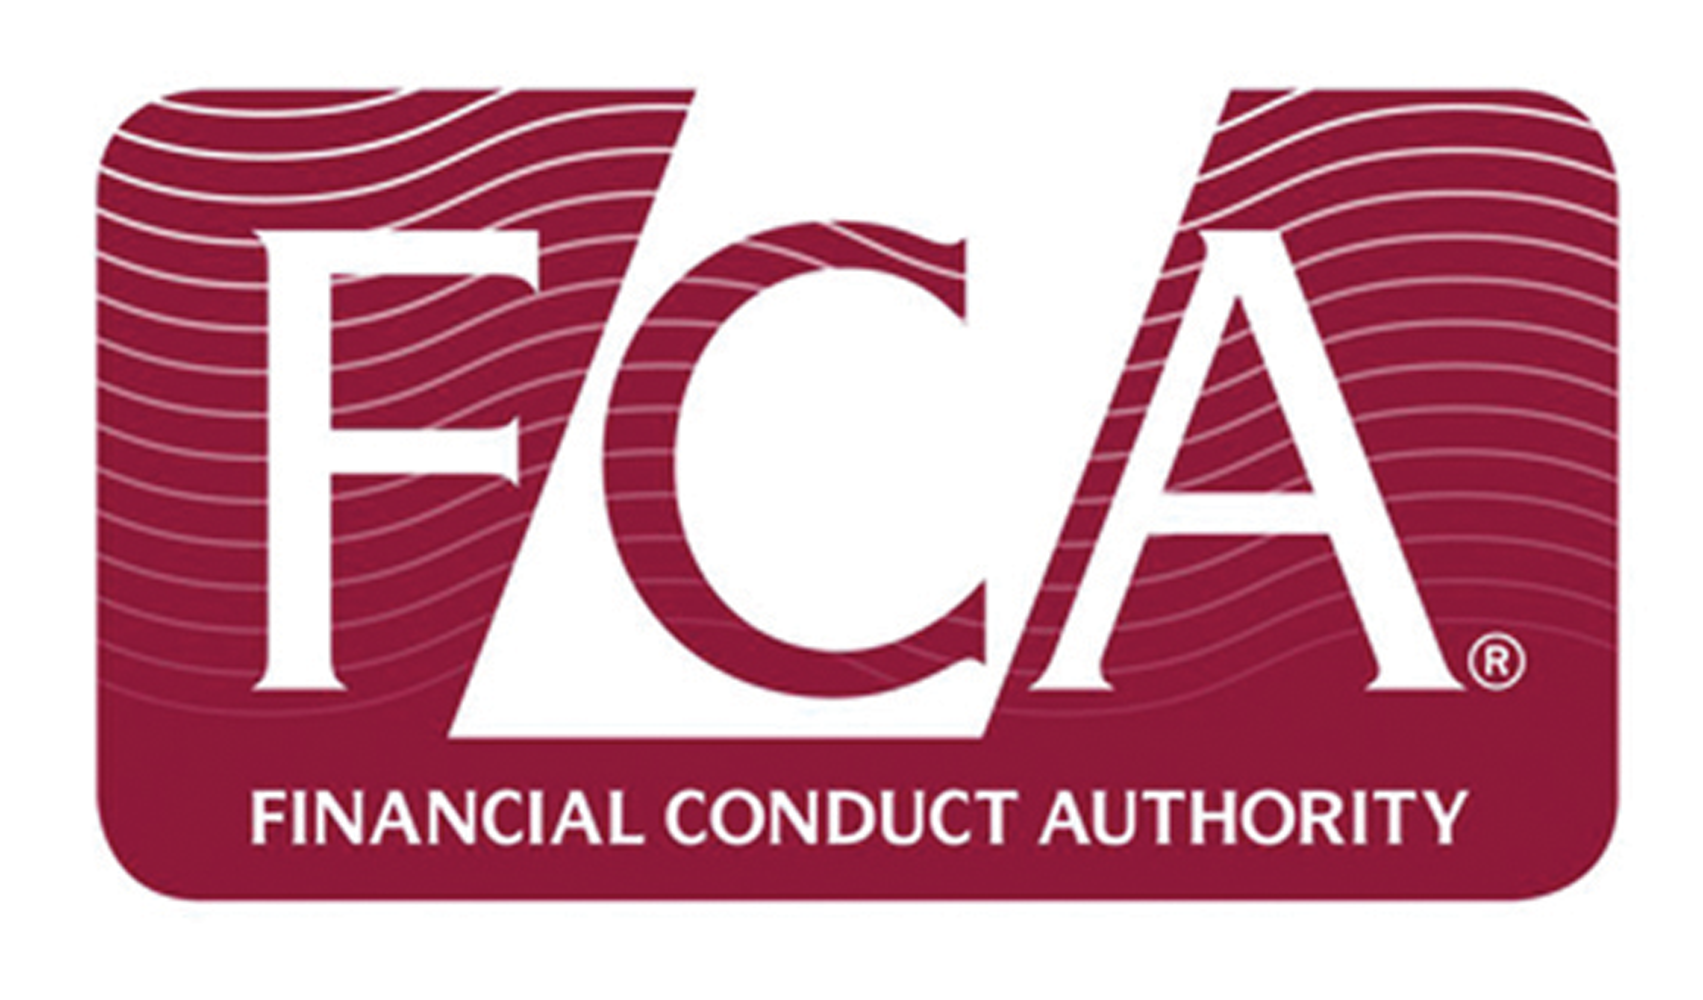 Regulator the FCA logo